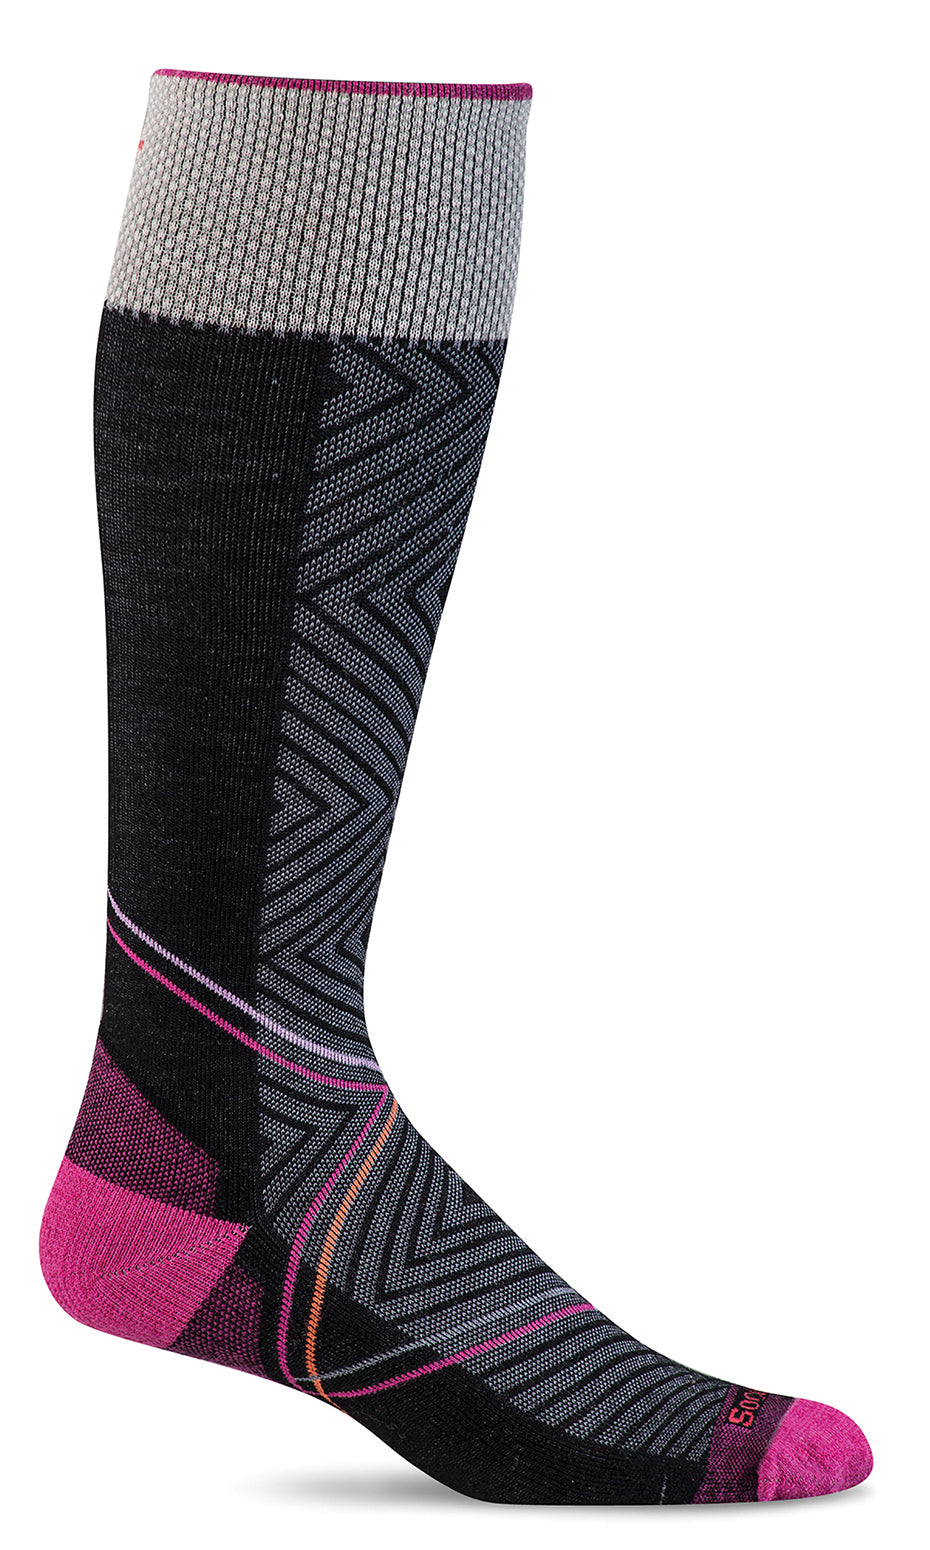 Pulse Knee-High - Black Firm Compression (20-30mmHG)